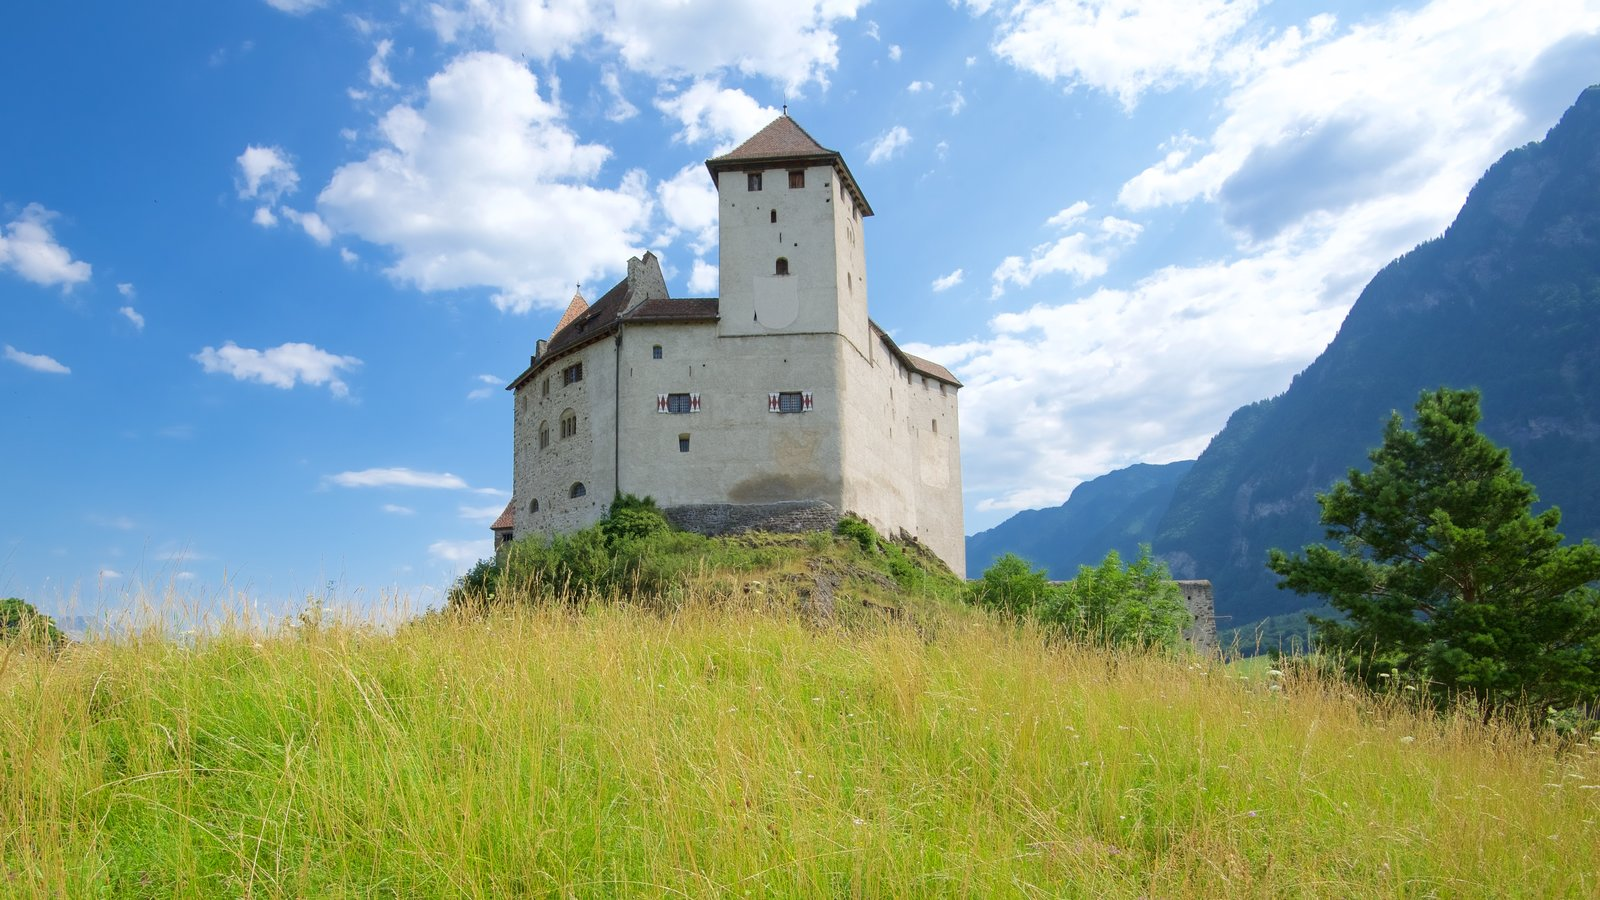 Liechtenstein which includes heritage elements, a castle and tranquil scenes